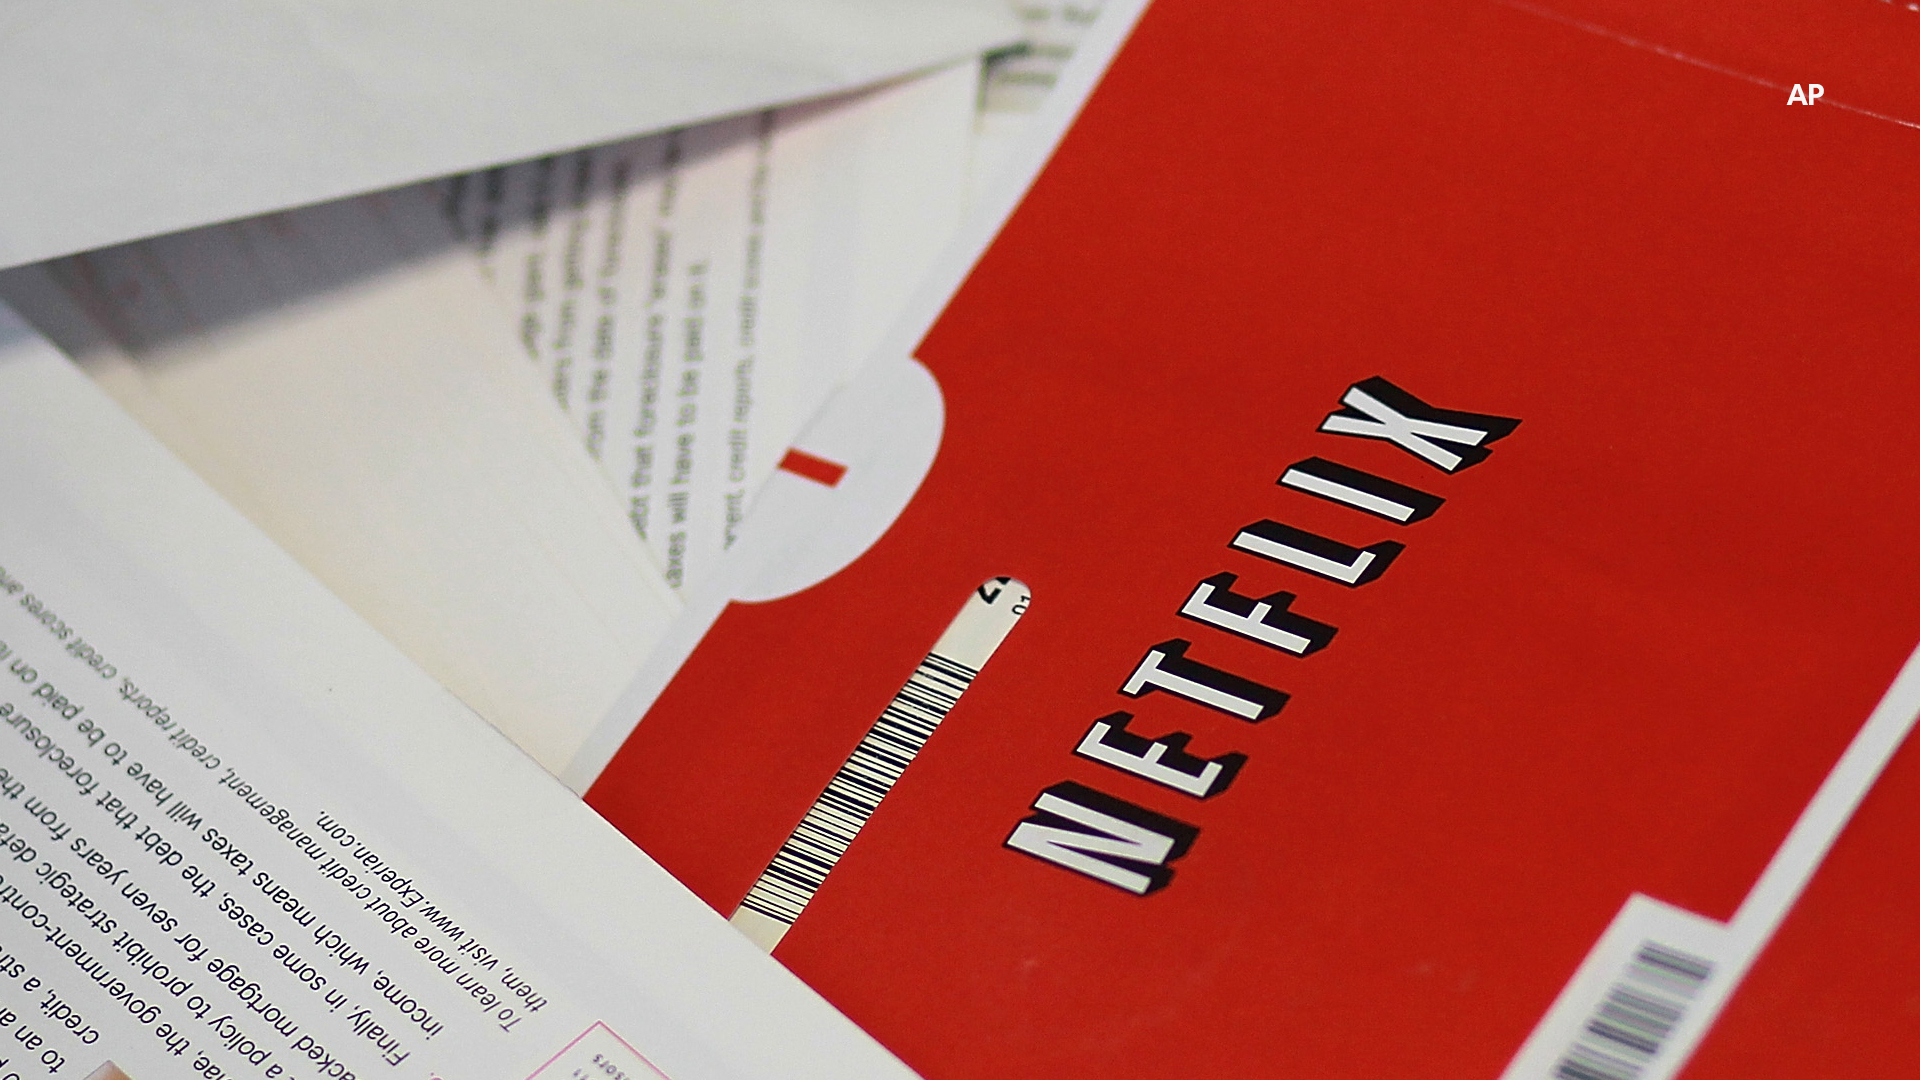 Amazon vs. Netflix: Which is better?